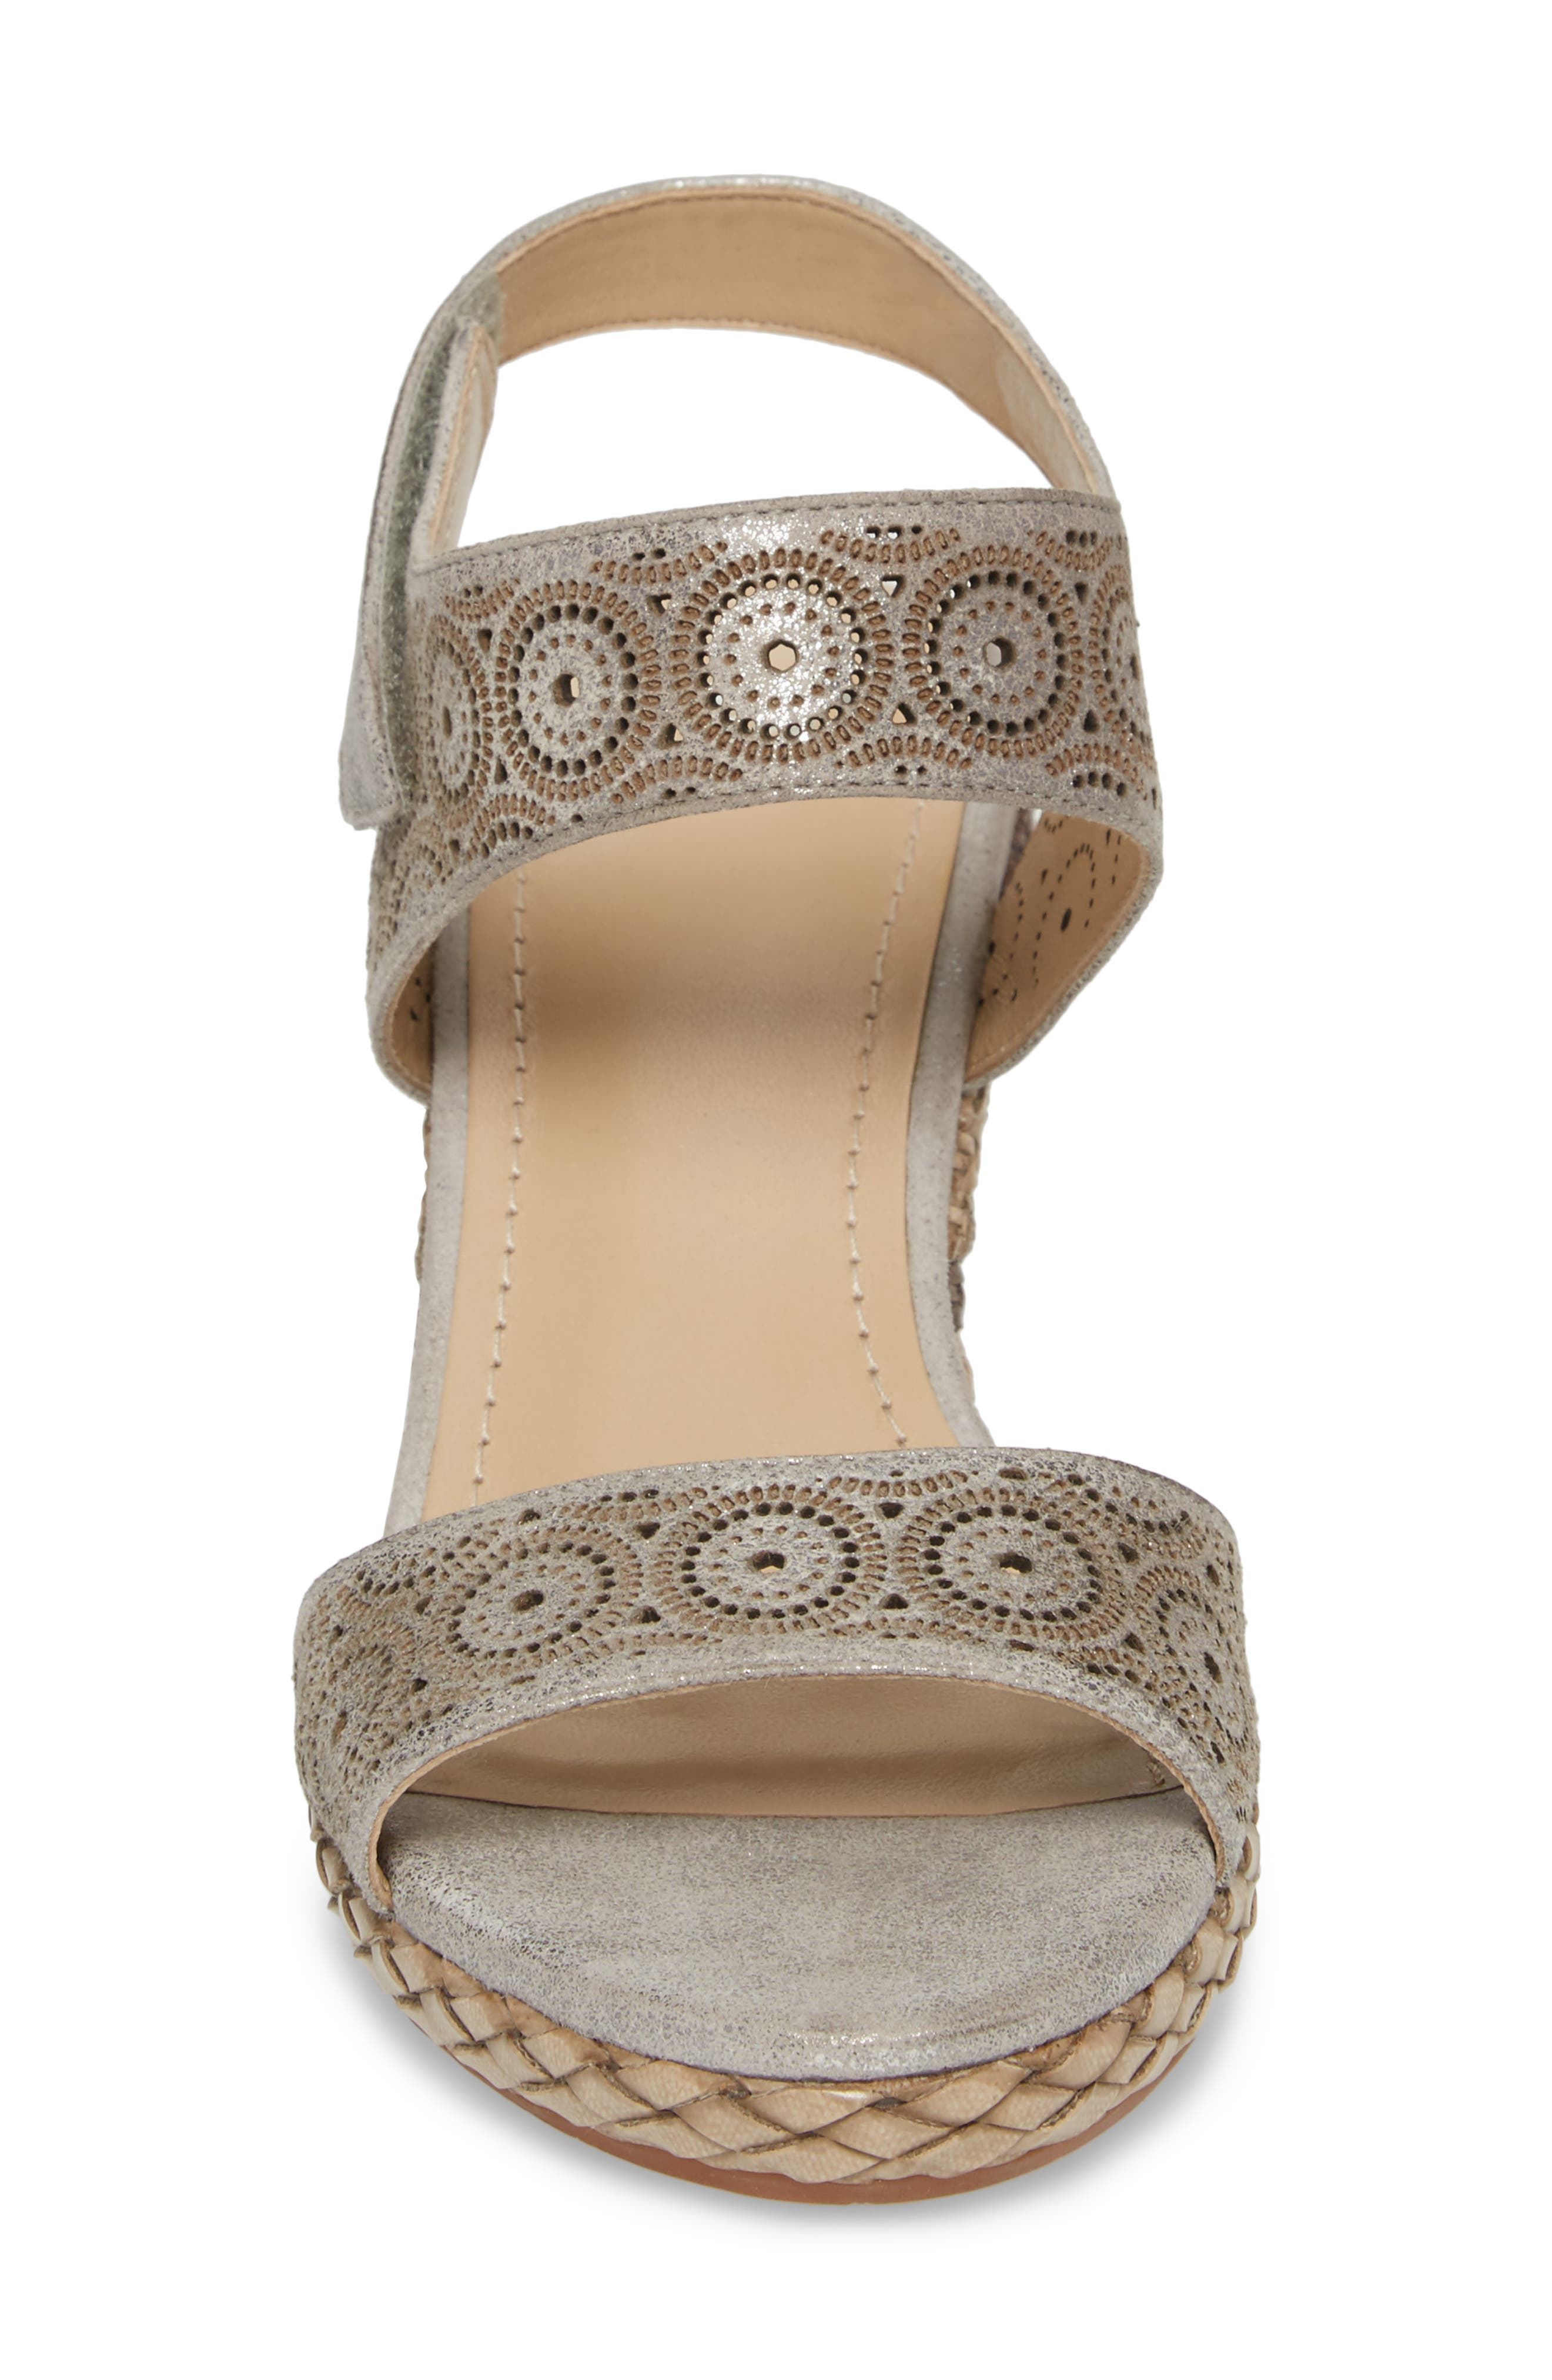 Georgiana Wedge Sandal,                             Alternate thumbnail 4, color,                             Pewter Leather